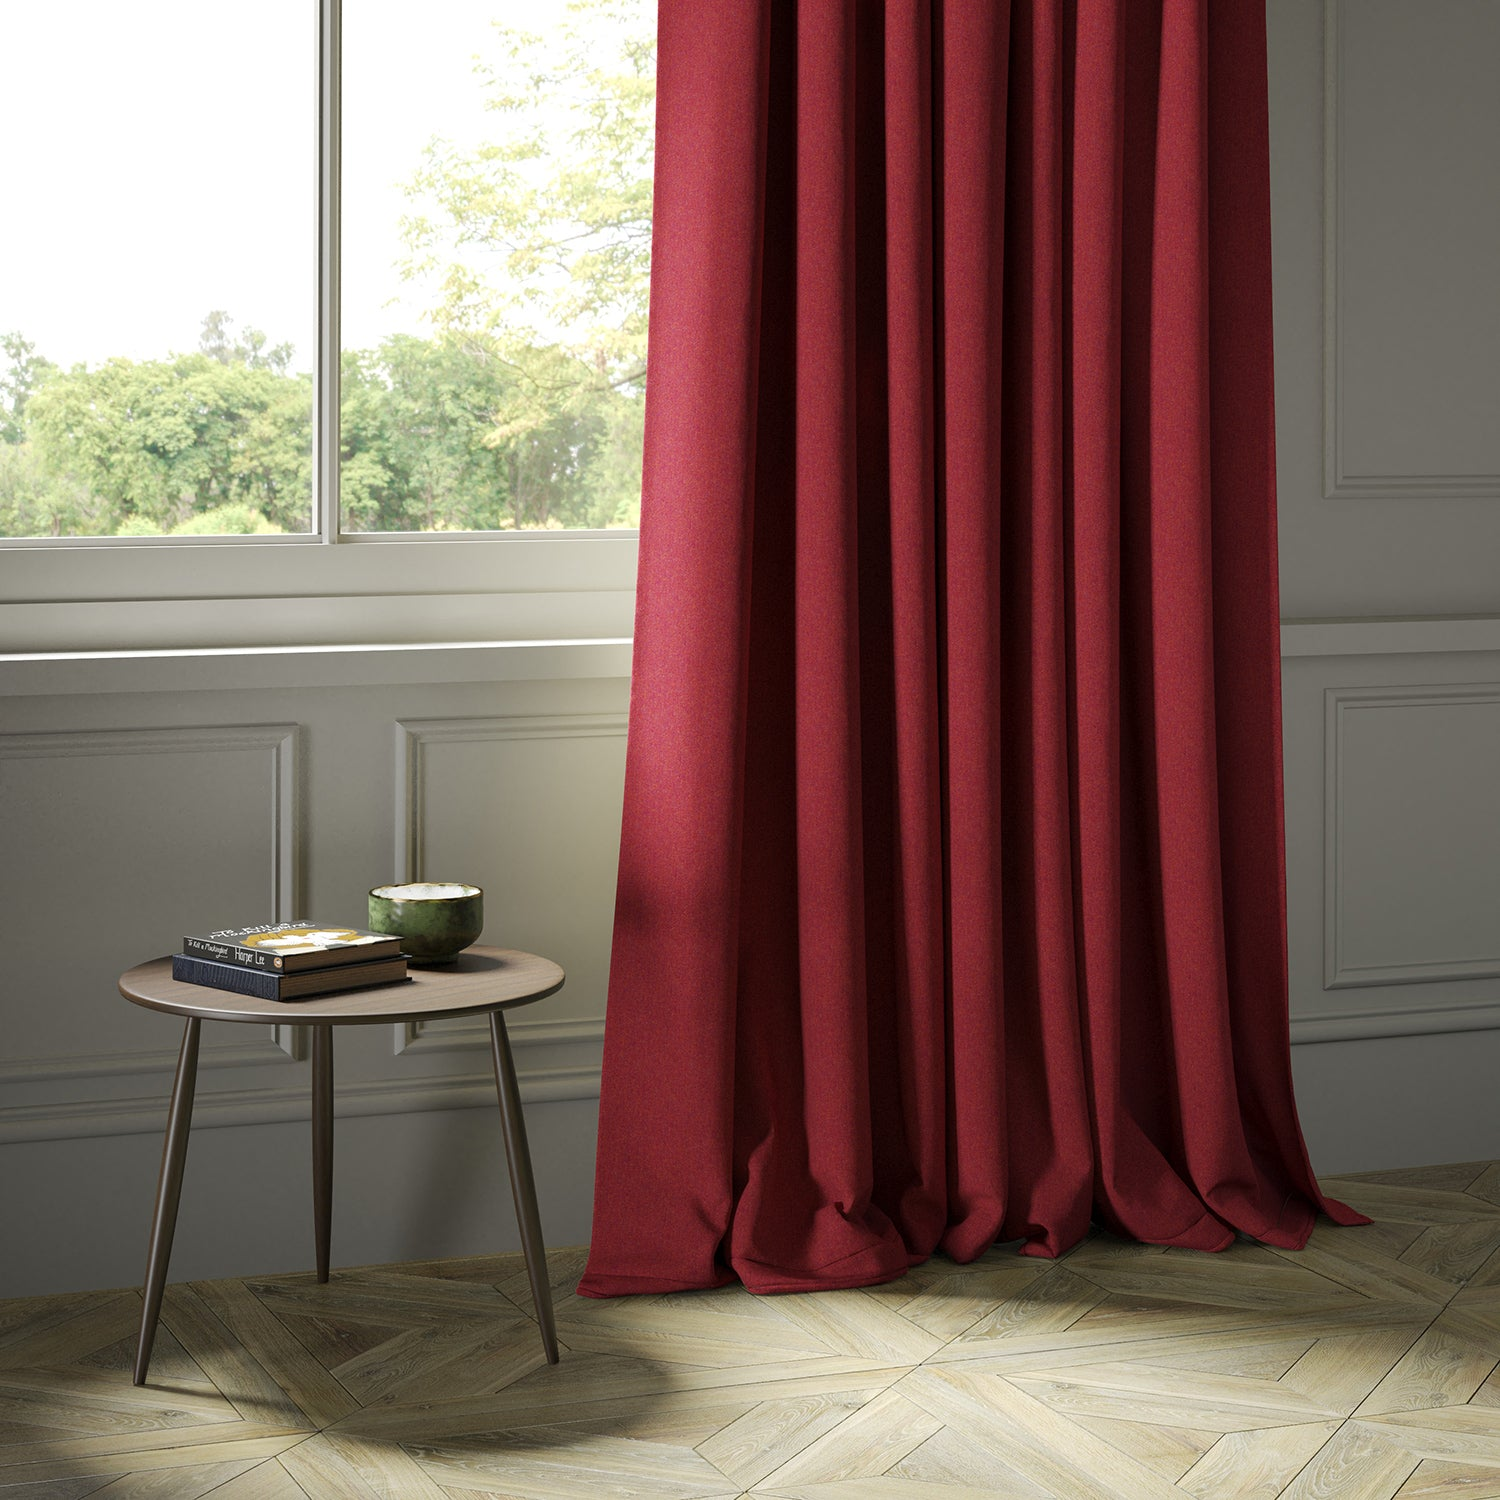 Curtains in a red Scottish wool herringbone fabric